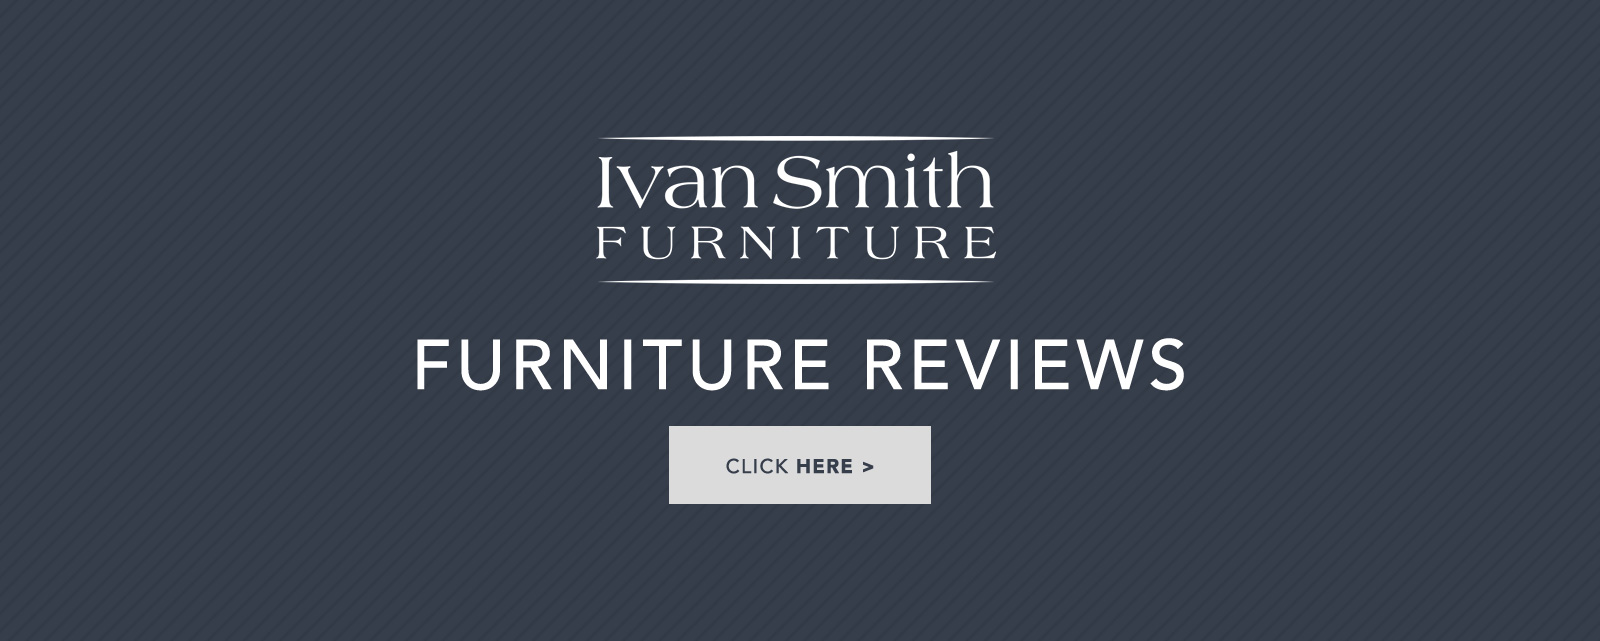 Ivan Smith Furniture Reviews